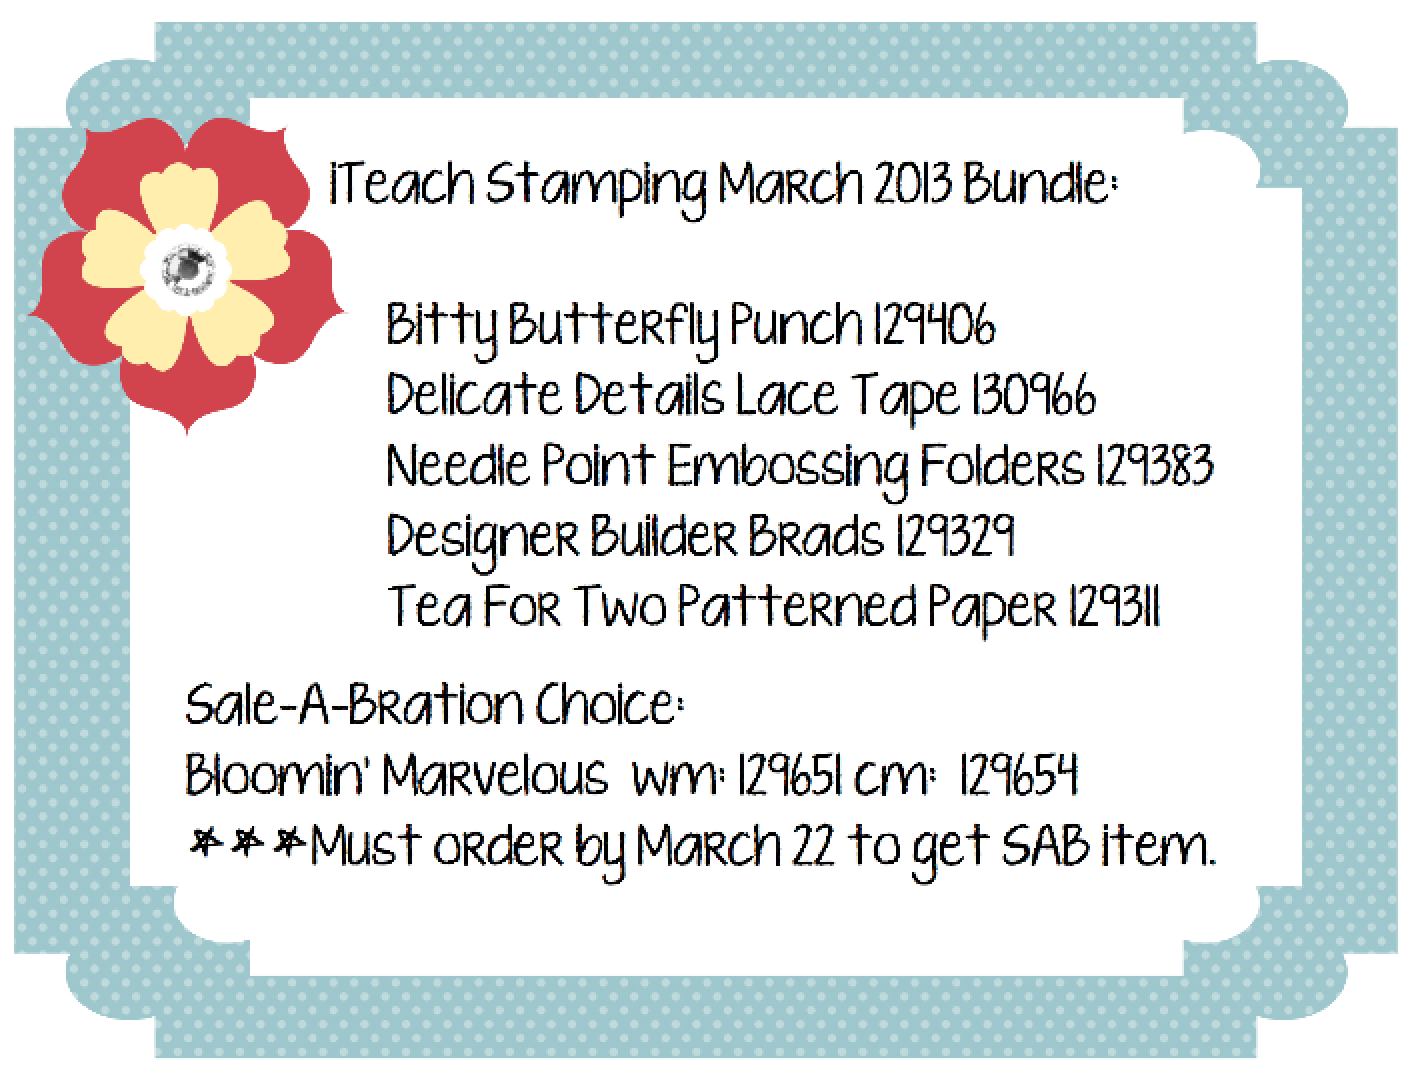 iTeach Stamping March 2013 Bundle